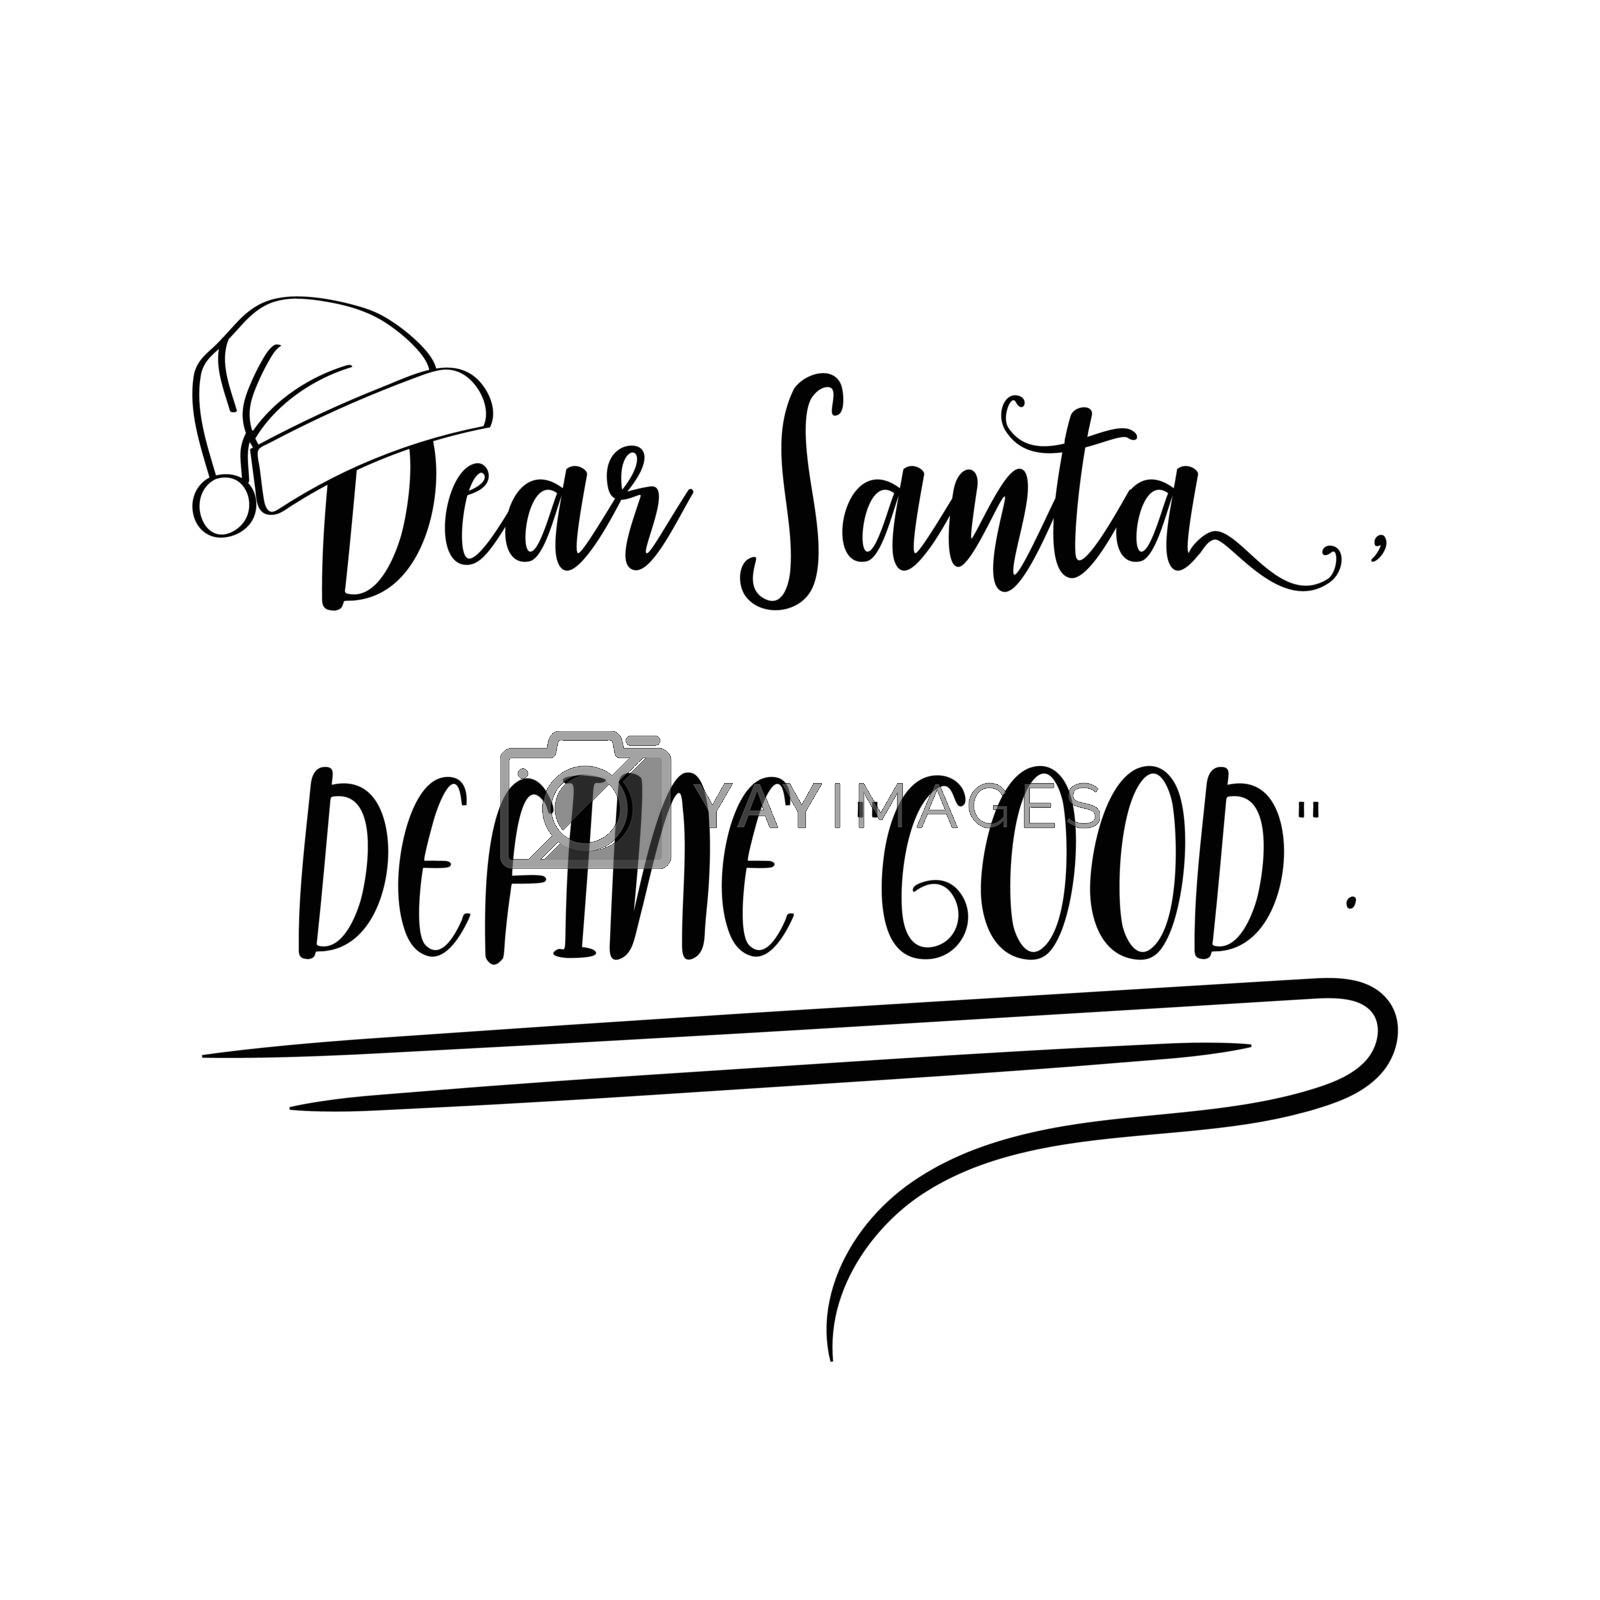 Dear Santa, define good . Christmas quote. Black typography for Christmas cards design, poster, print